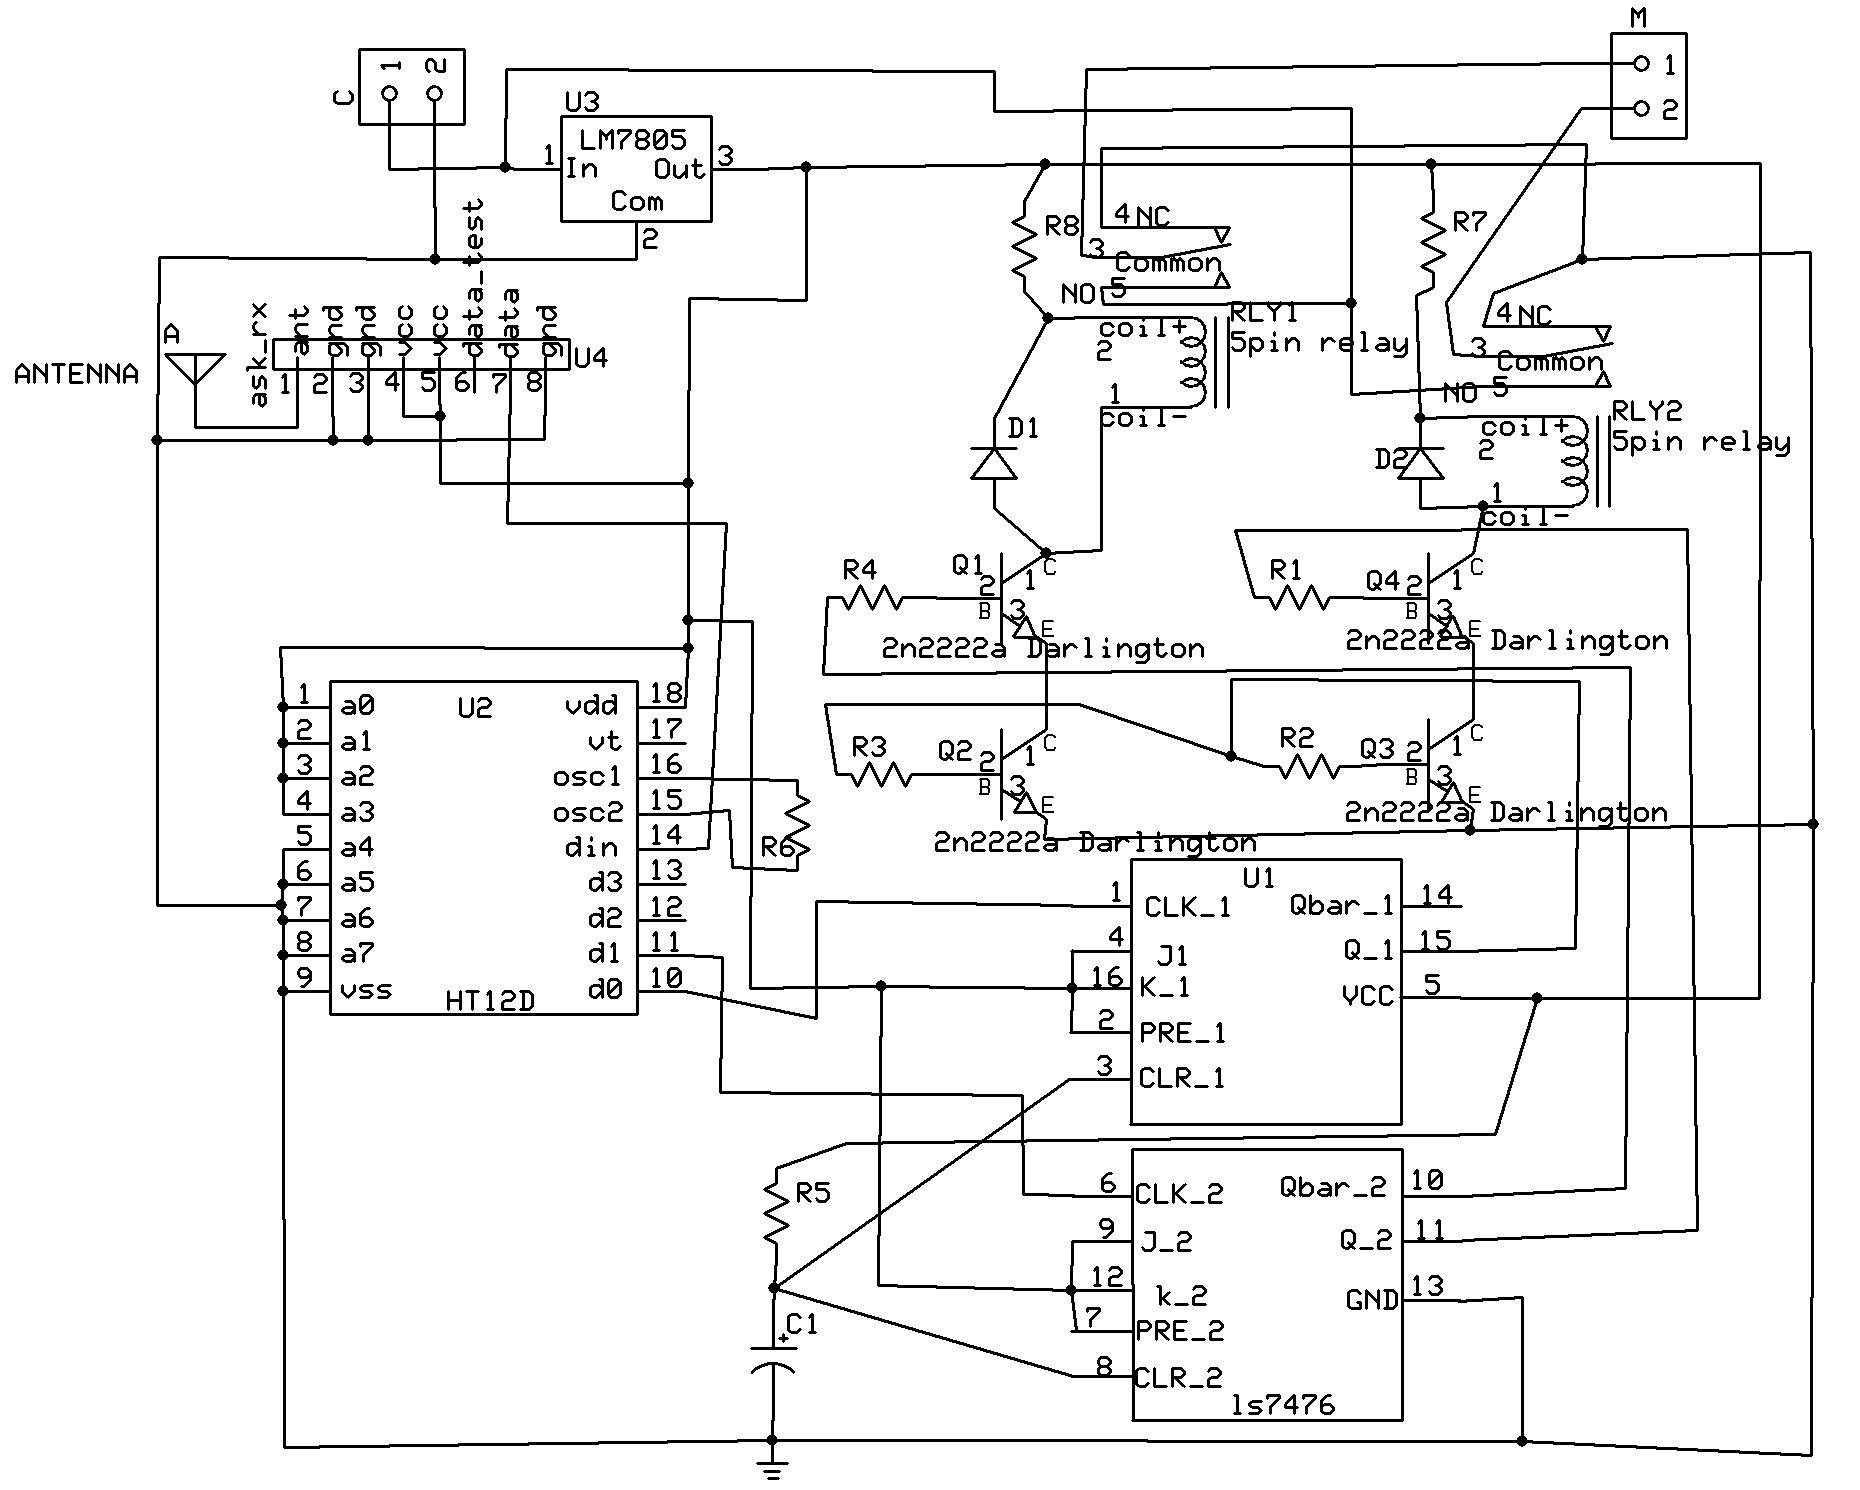 1991 chevy caprice clic fuse box diagram